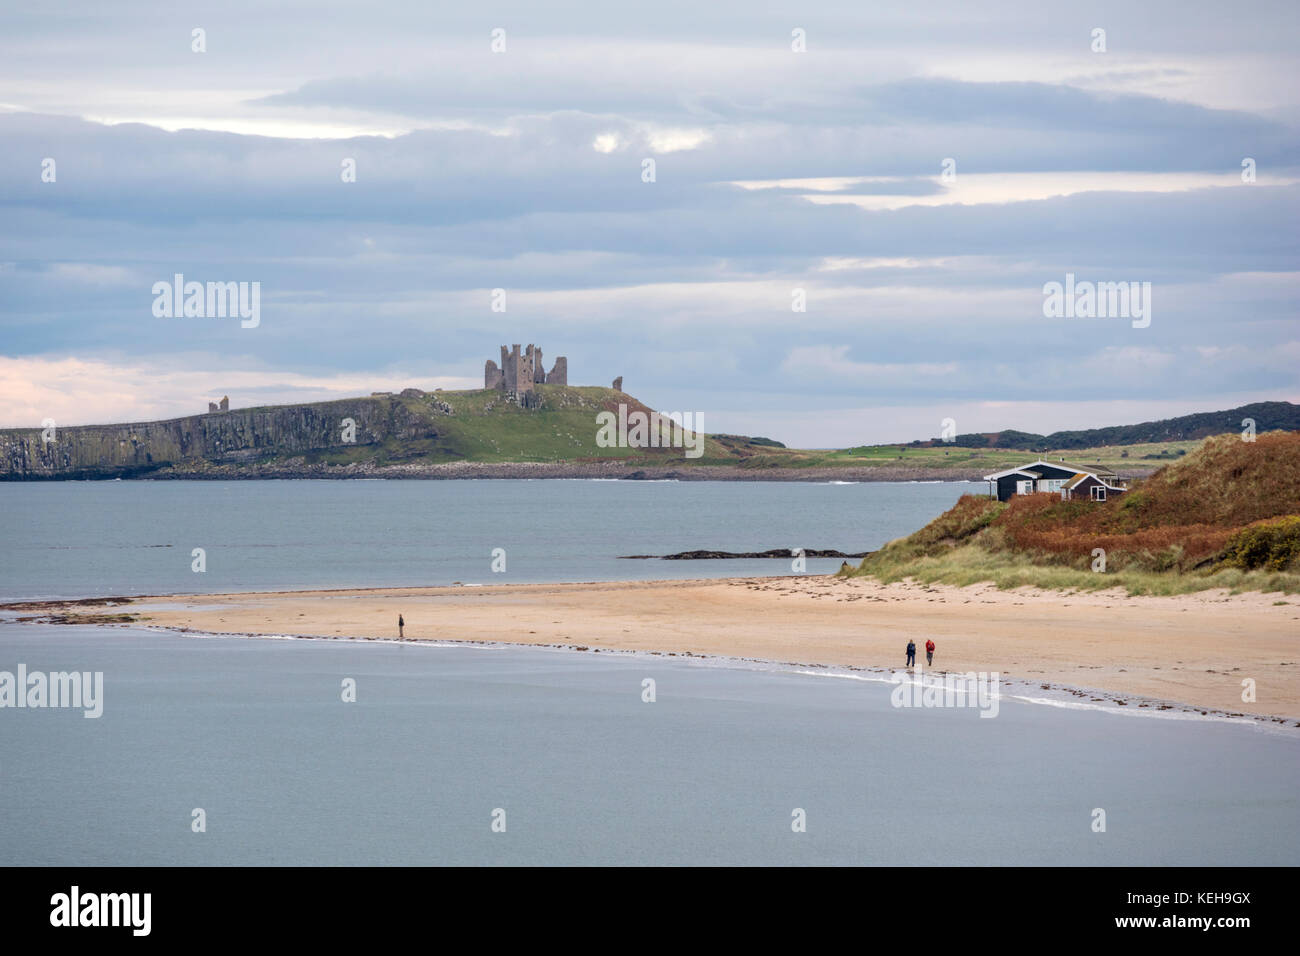 Looking across Embleton Bay towards Dunstanburgh Castle, Northumberland, England, UK - Stock Image